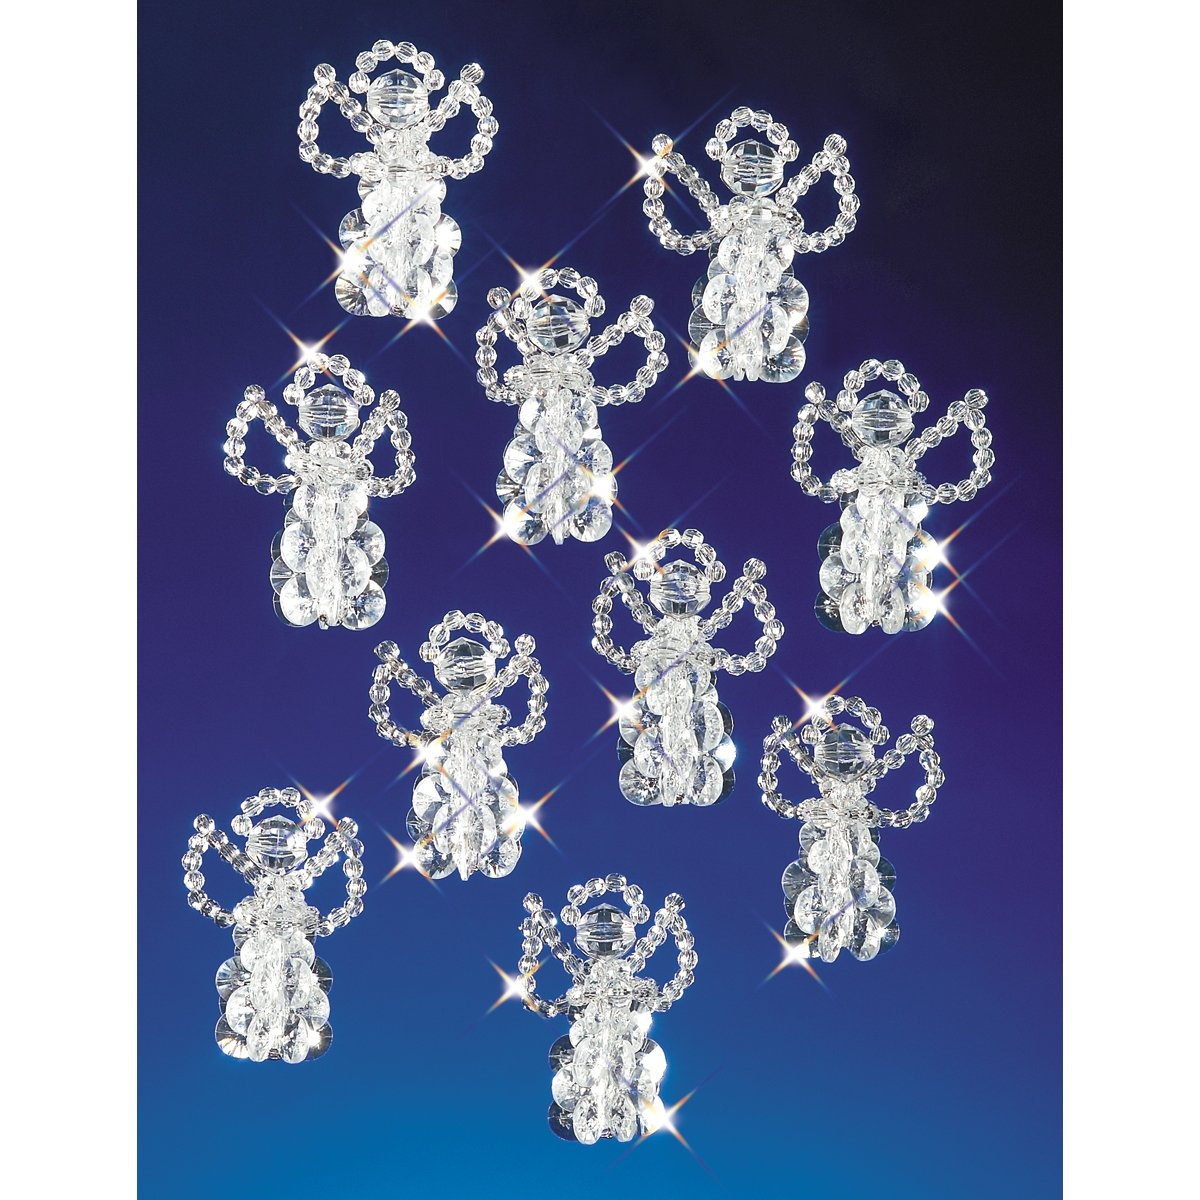 Beadery Holiday Beaded Ornament Kit, 2.5-Inch, Little Angels, Makes 18 Ornaments Darice BDR888905